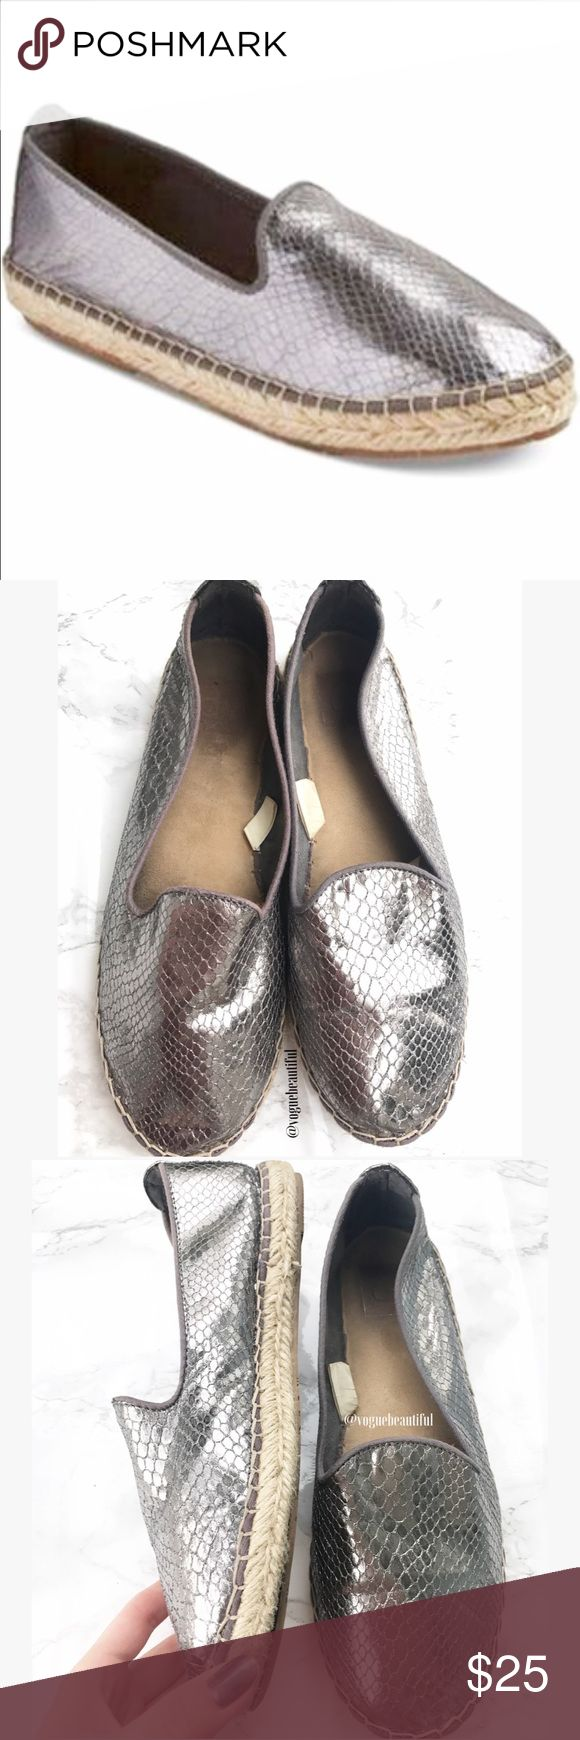 Dolce Vita Textured Silver Espadrilles Super cute Dolce Vita Textured Silver Espadrille Slip Ons - good preloved condition, some wear on the inside and bottoms but the exterior is in great shape - size 8 - box not included - !!NO TRADES!! Dolce Vita Shoes Espadrilles